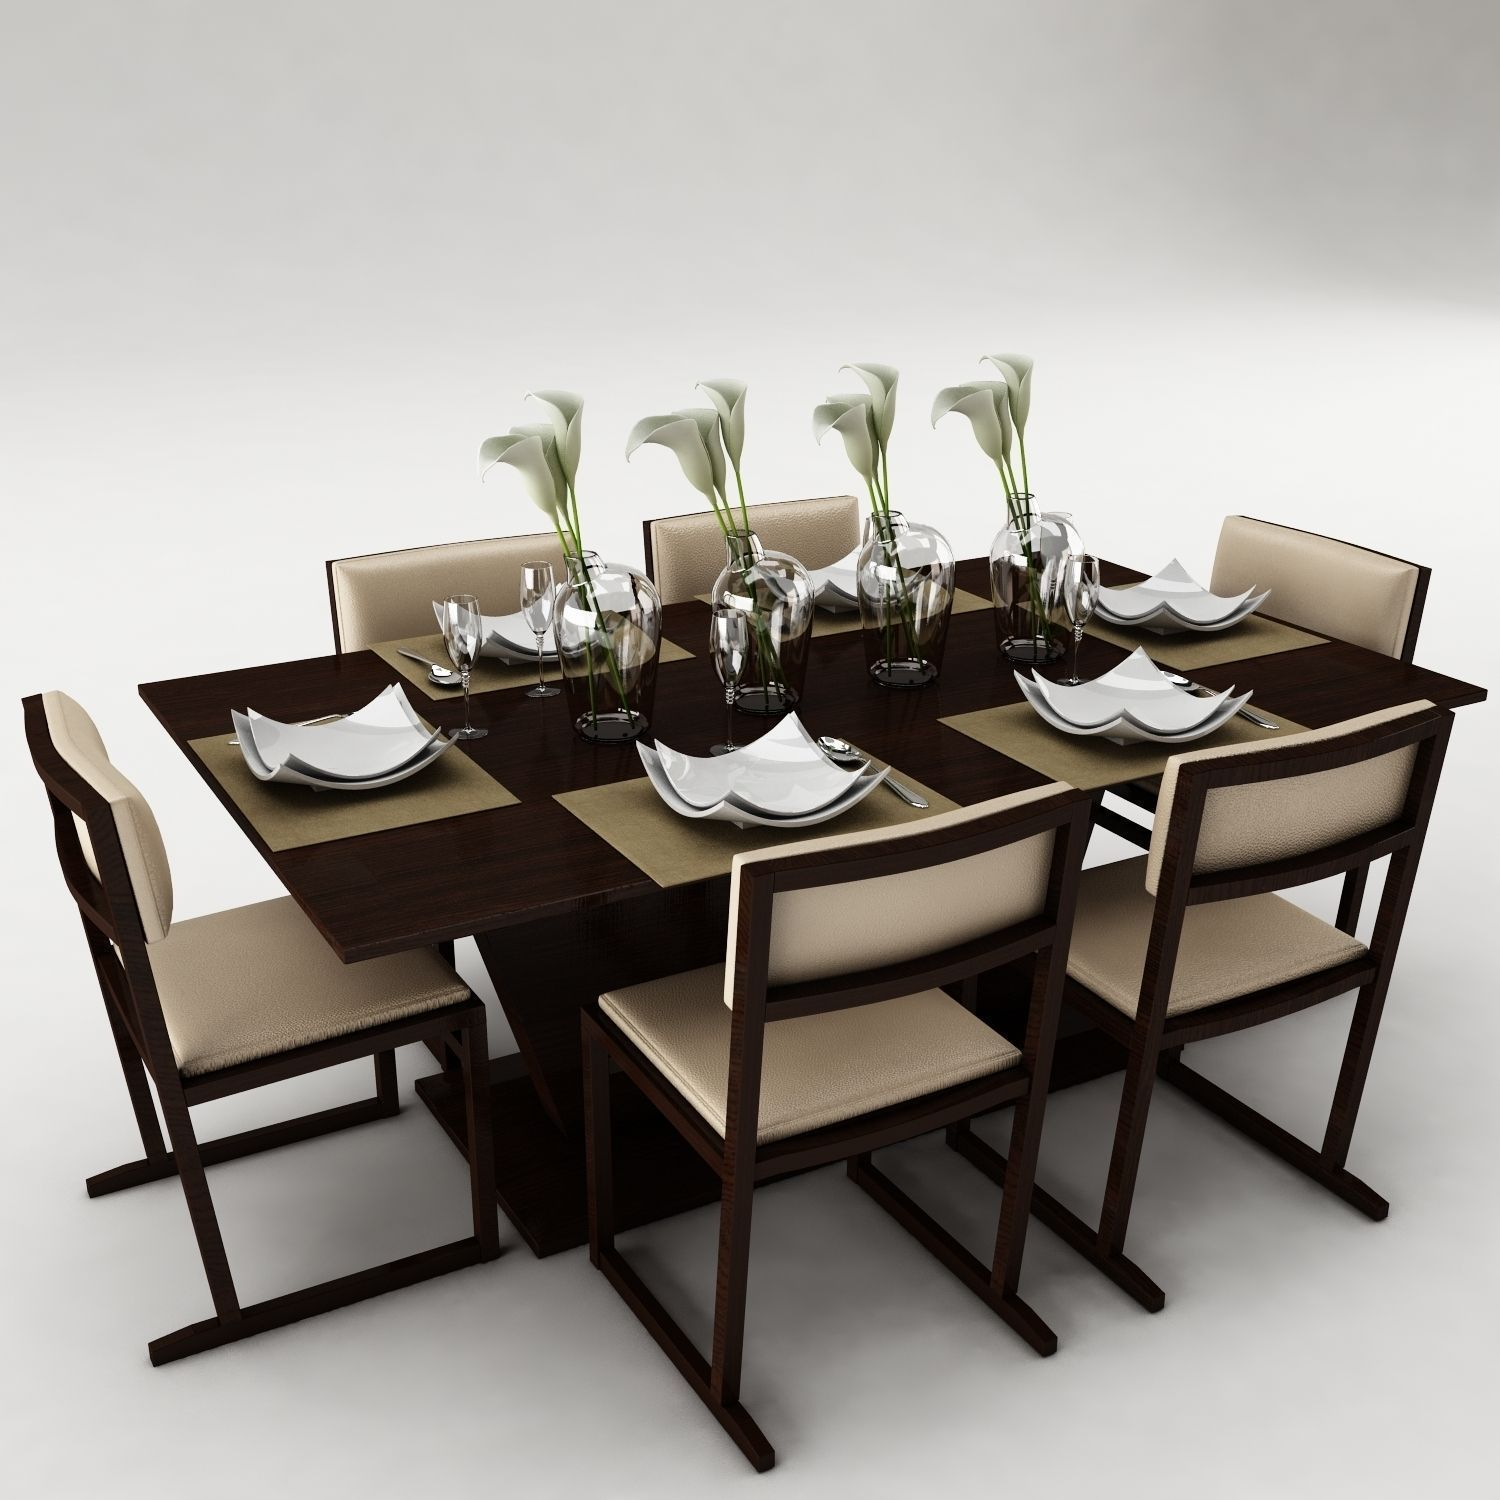 Dining table models home design for Latest model dining table designs